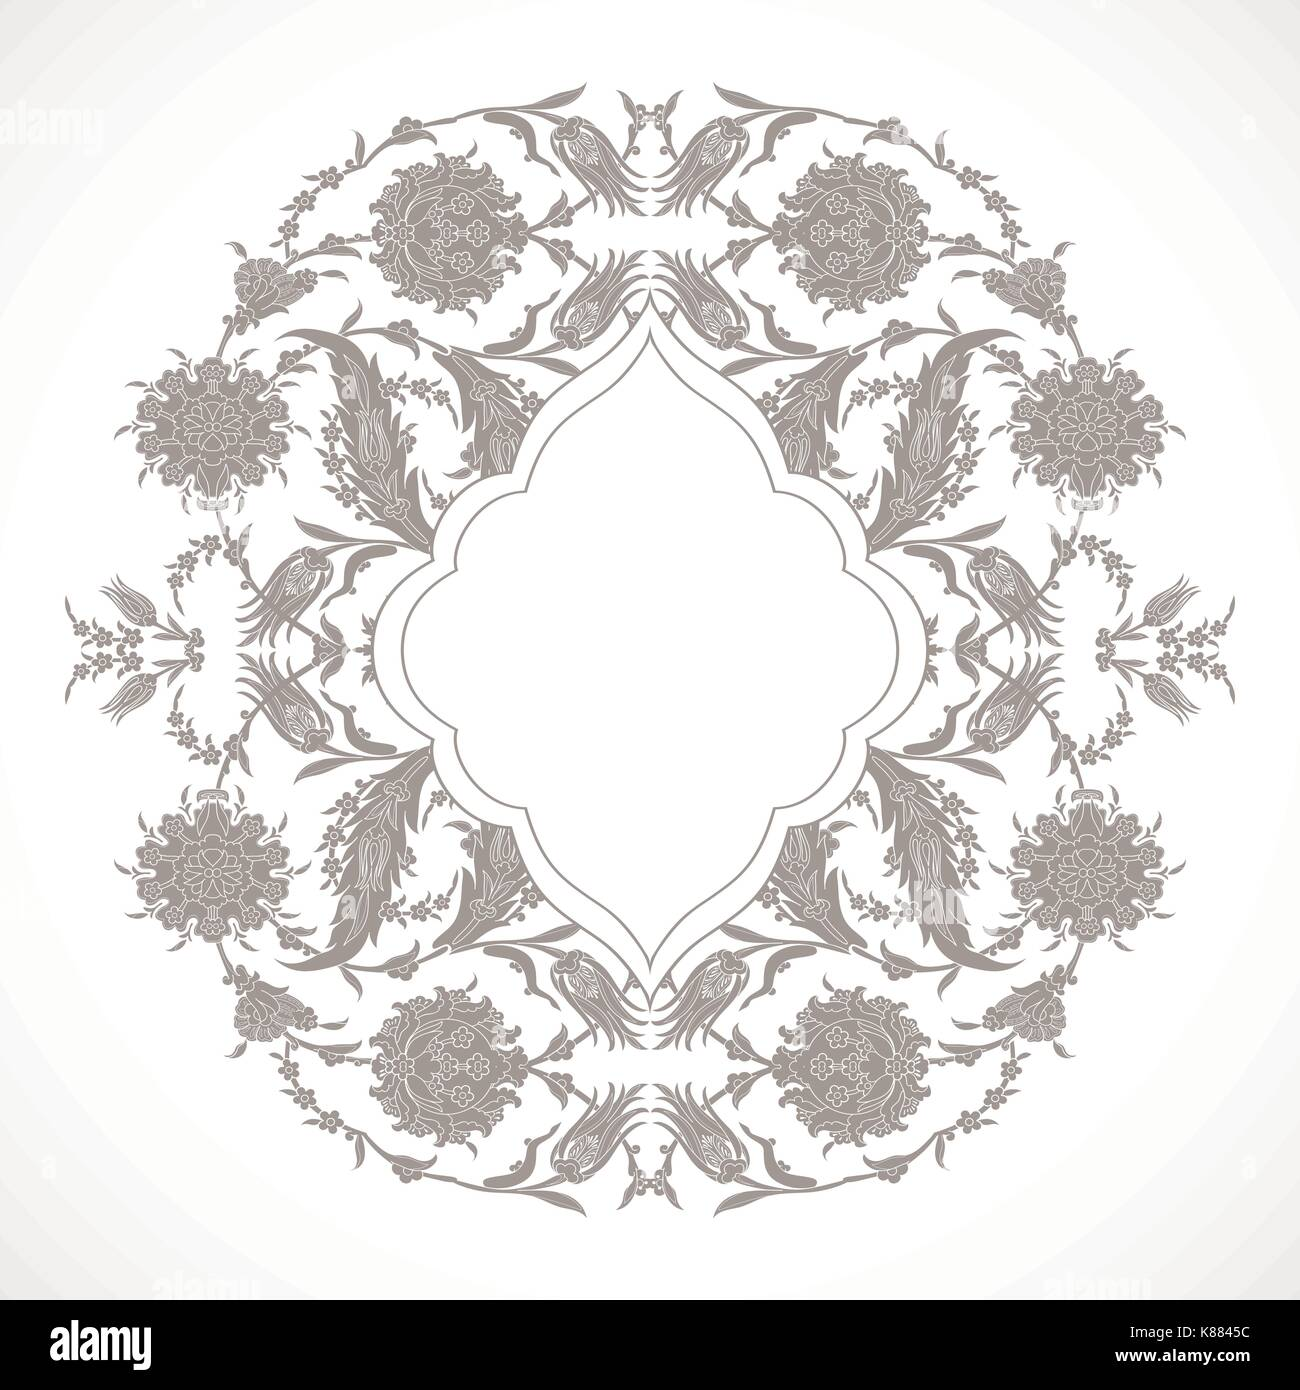 Arabesque Vintage Outline Decor Ornate Pattern For Design Template Vector Eastern Motif Floral Border Frame Round Lines Flowers Save The Date